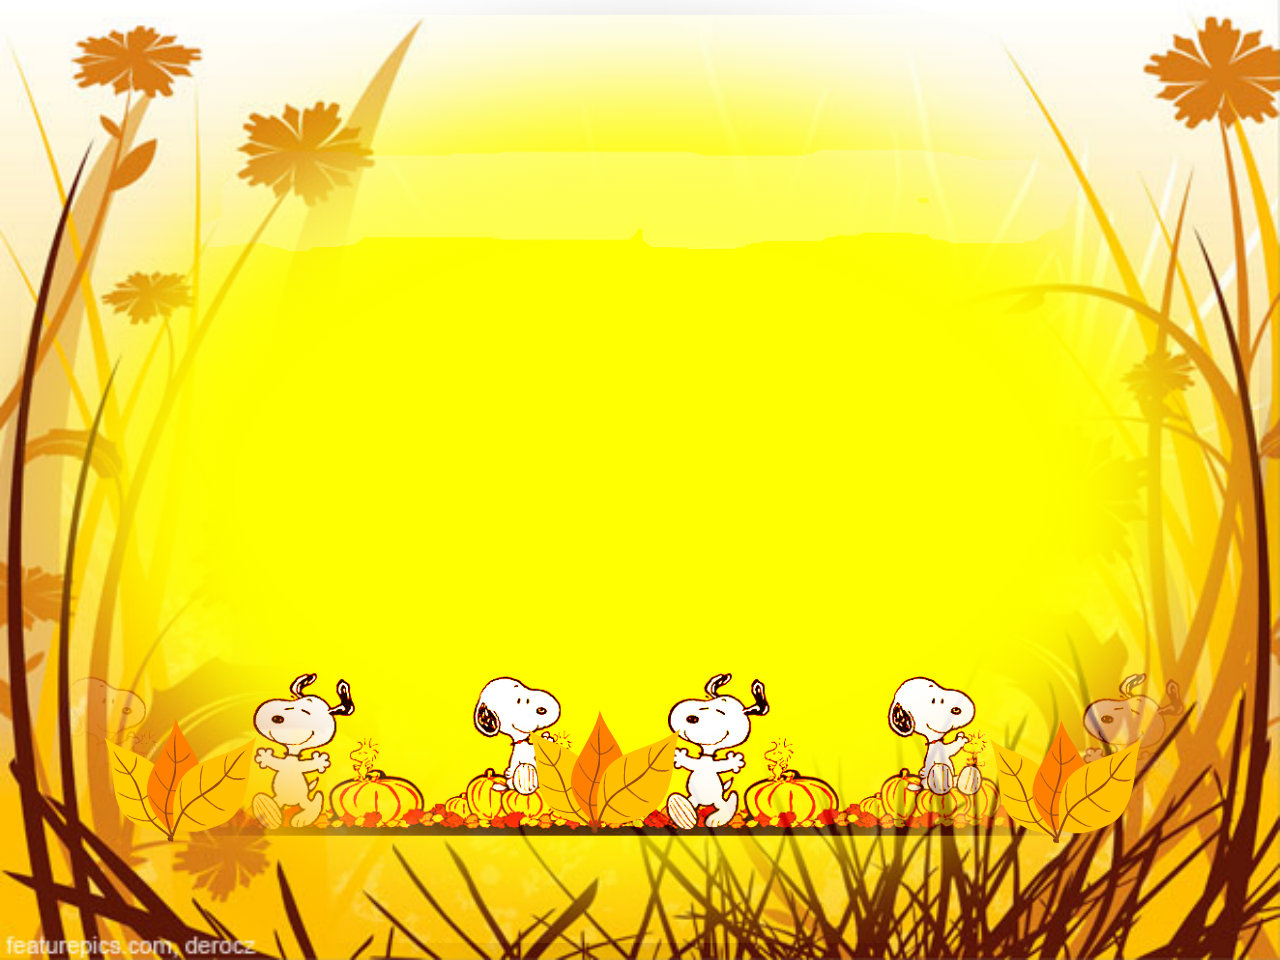 Peanuts images Snoopy Thanksgiving wallpaper photos 36008983 1280x960